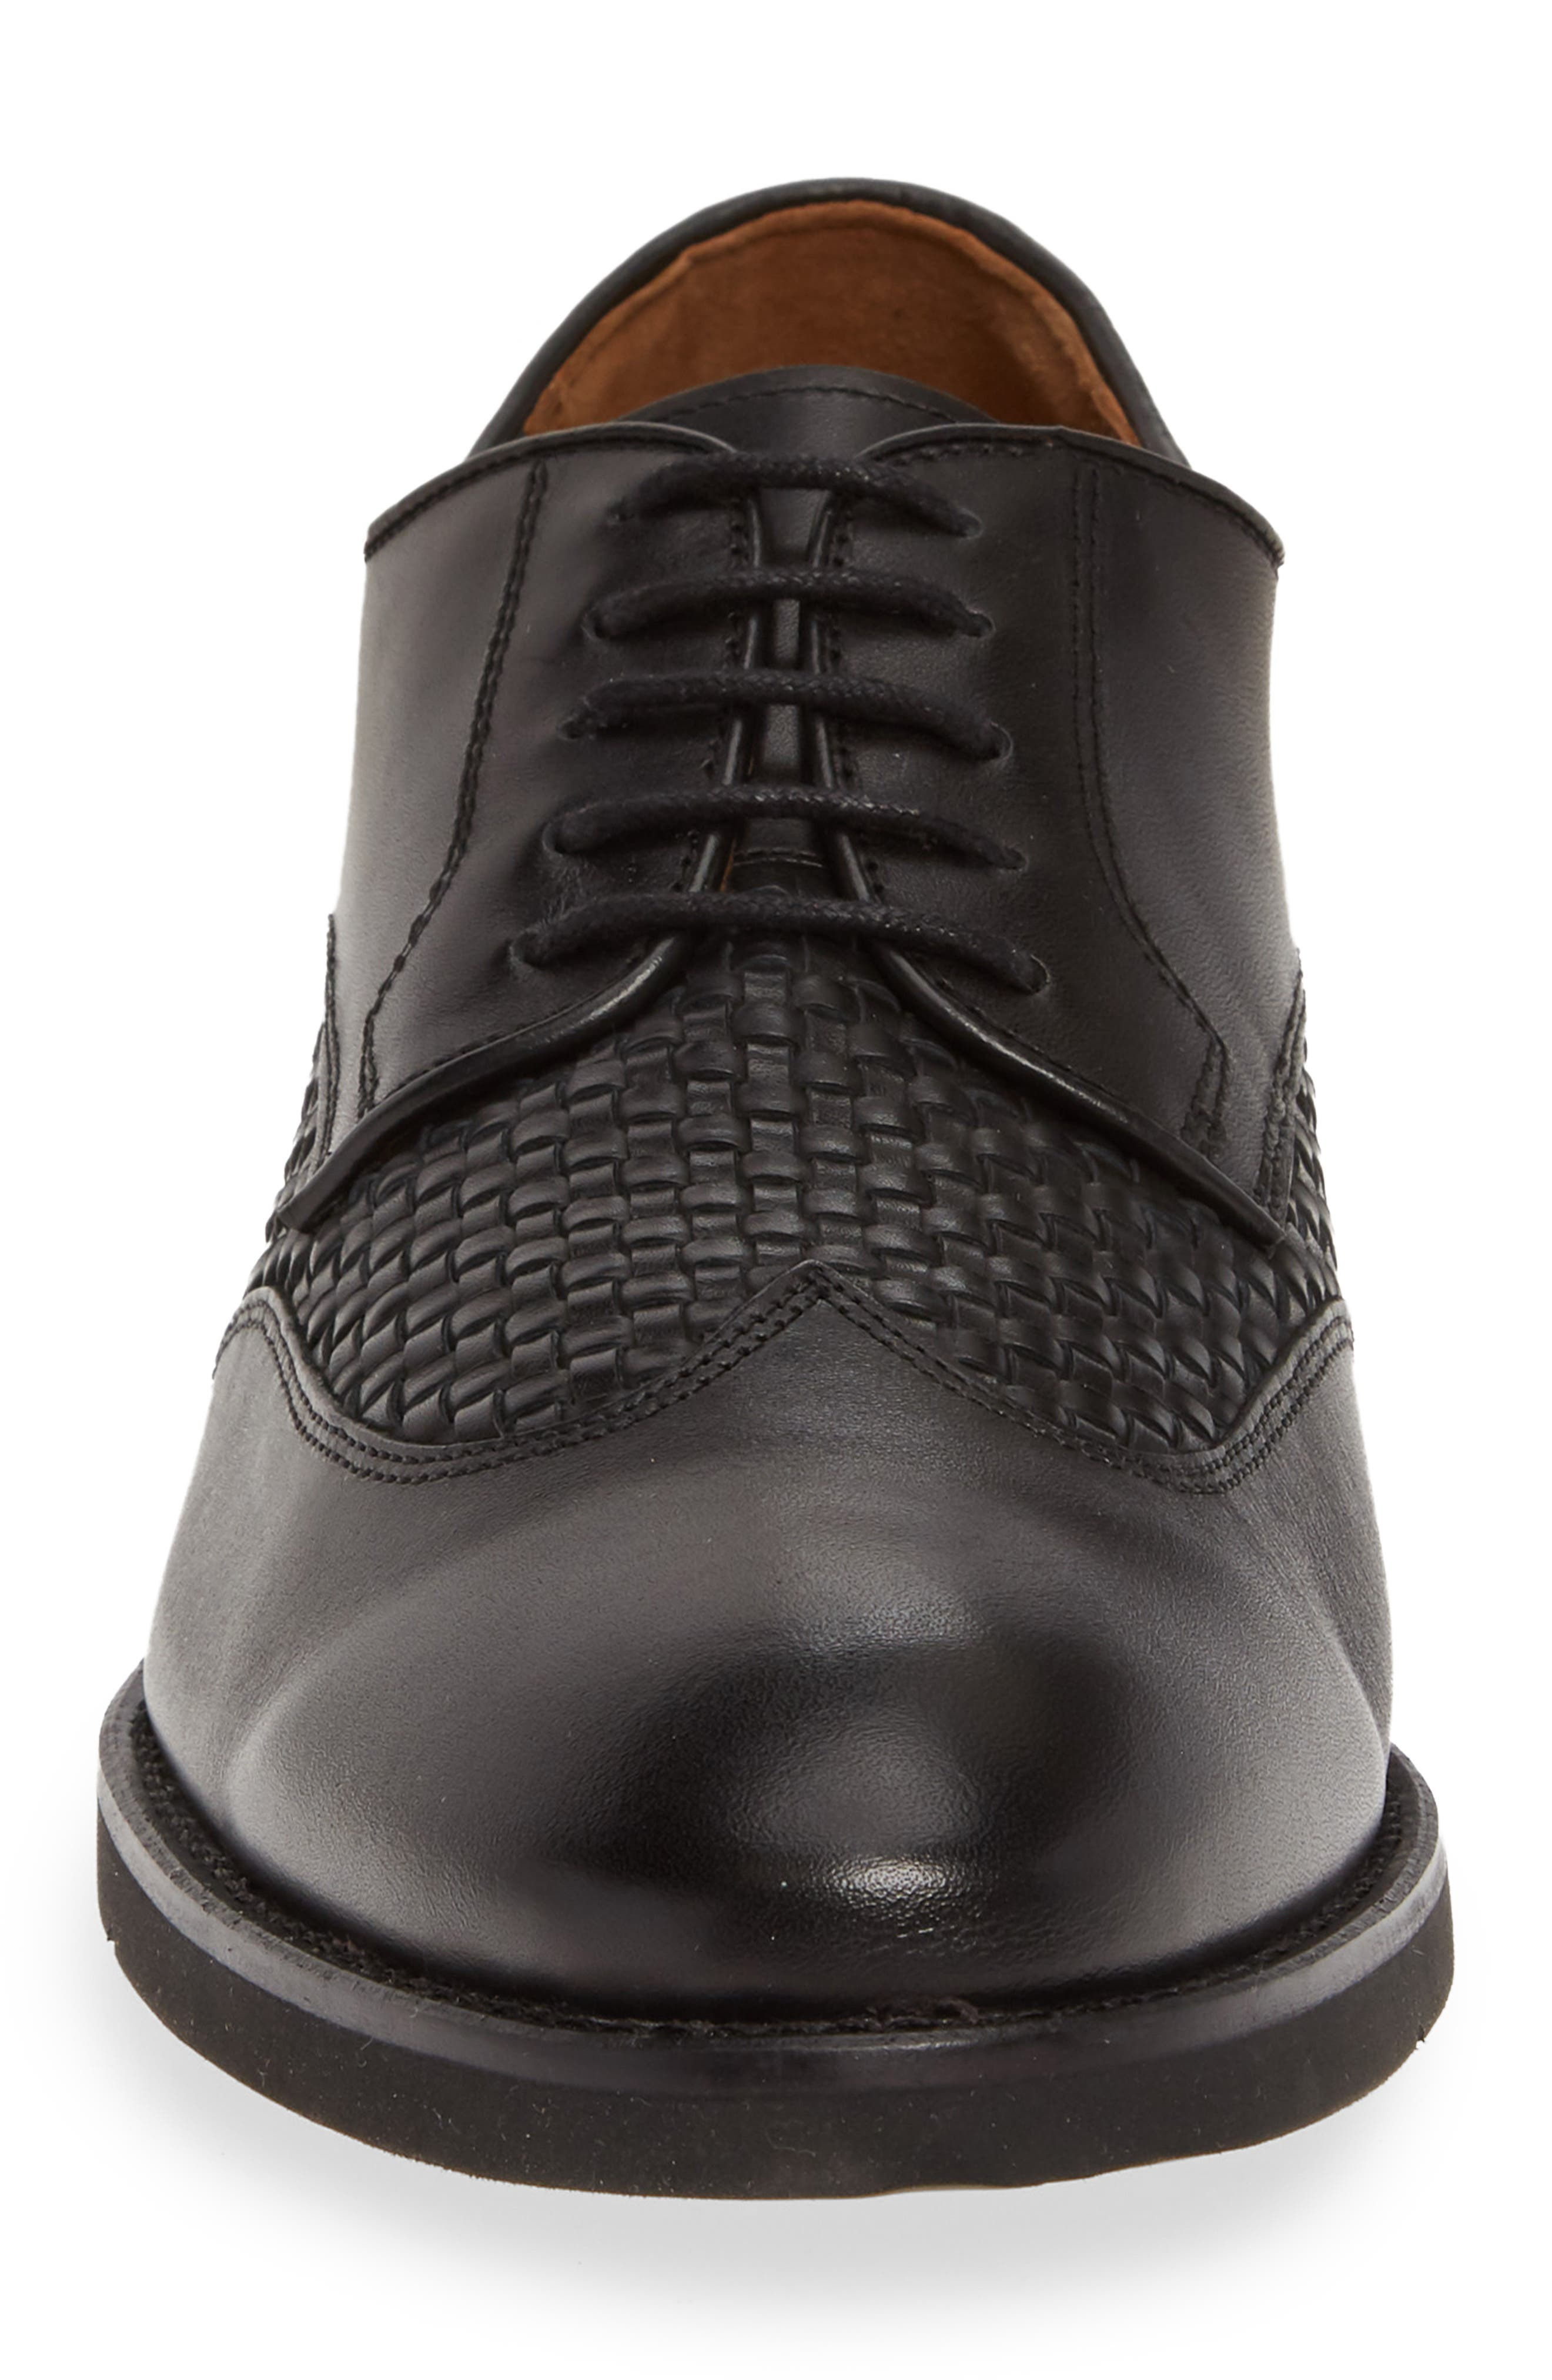 JOHNSTON & MURPHY, Carlson Woven Wingtip Derby, Alternate thumbnail 4, color, BLACK LEATHER